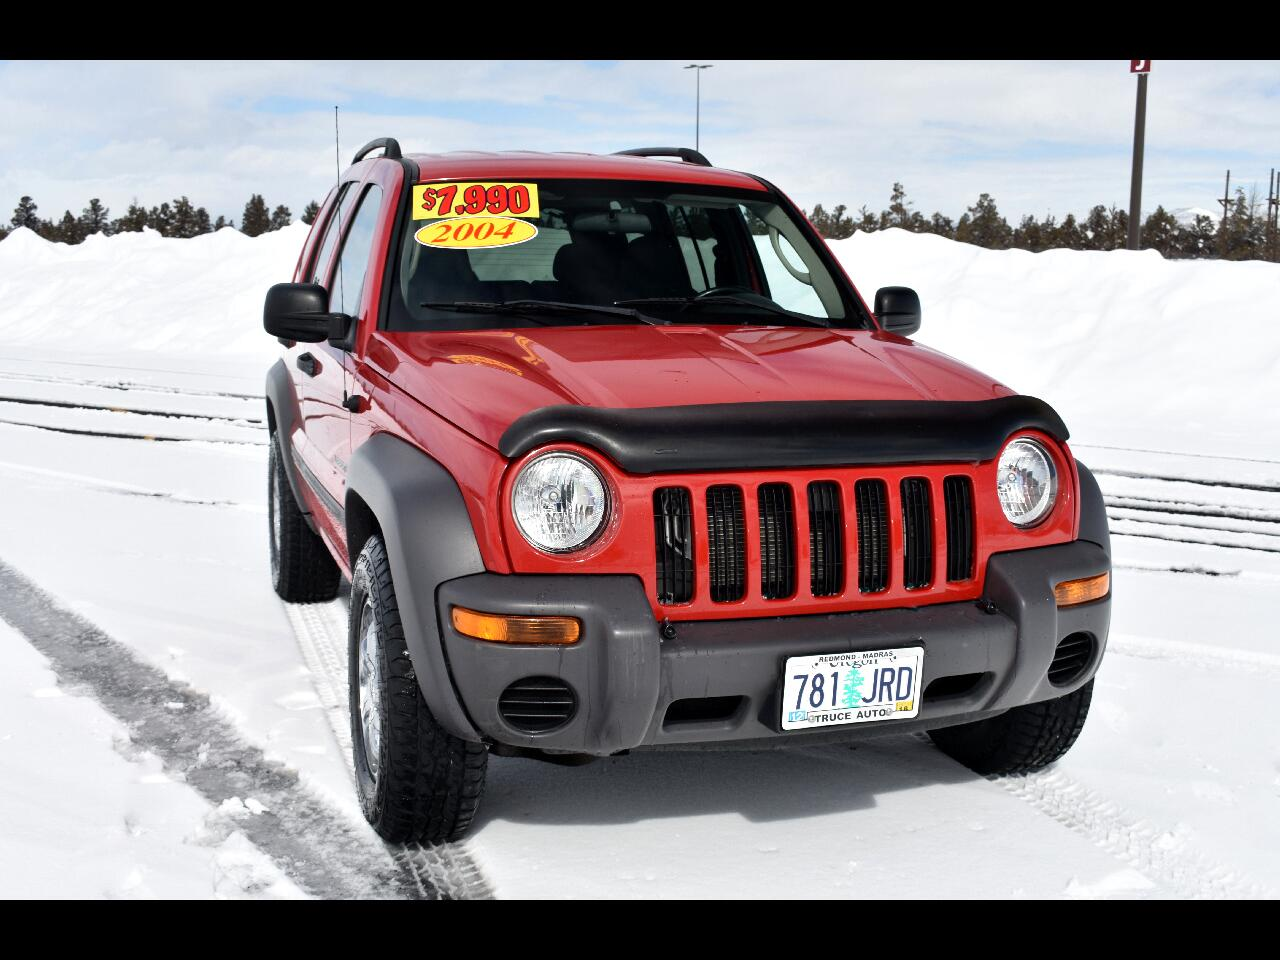 2004 Jeep Liberty 4 dr Sport 4WD ***LOW MILES***